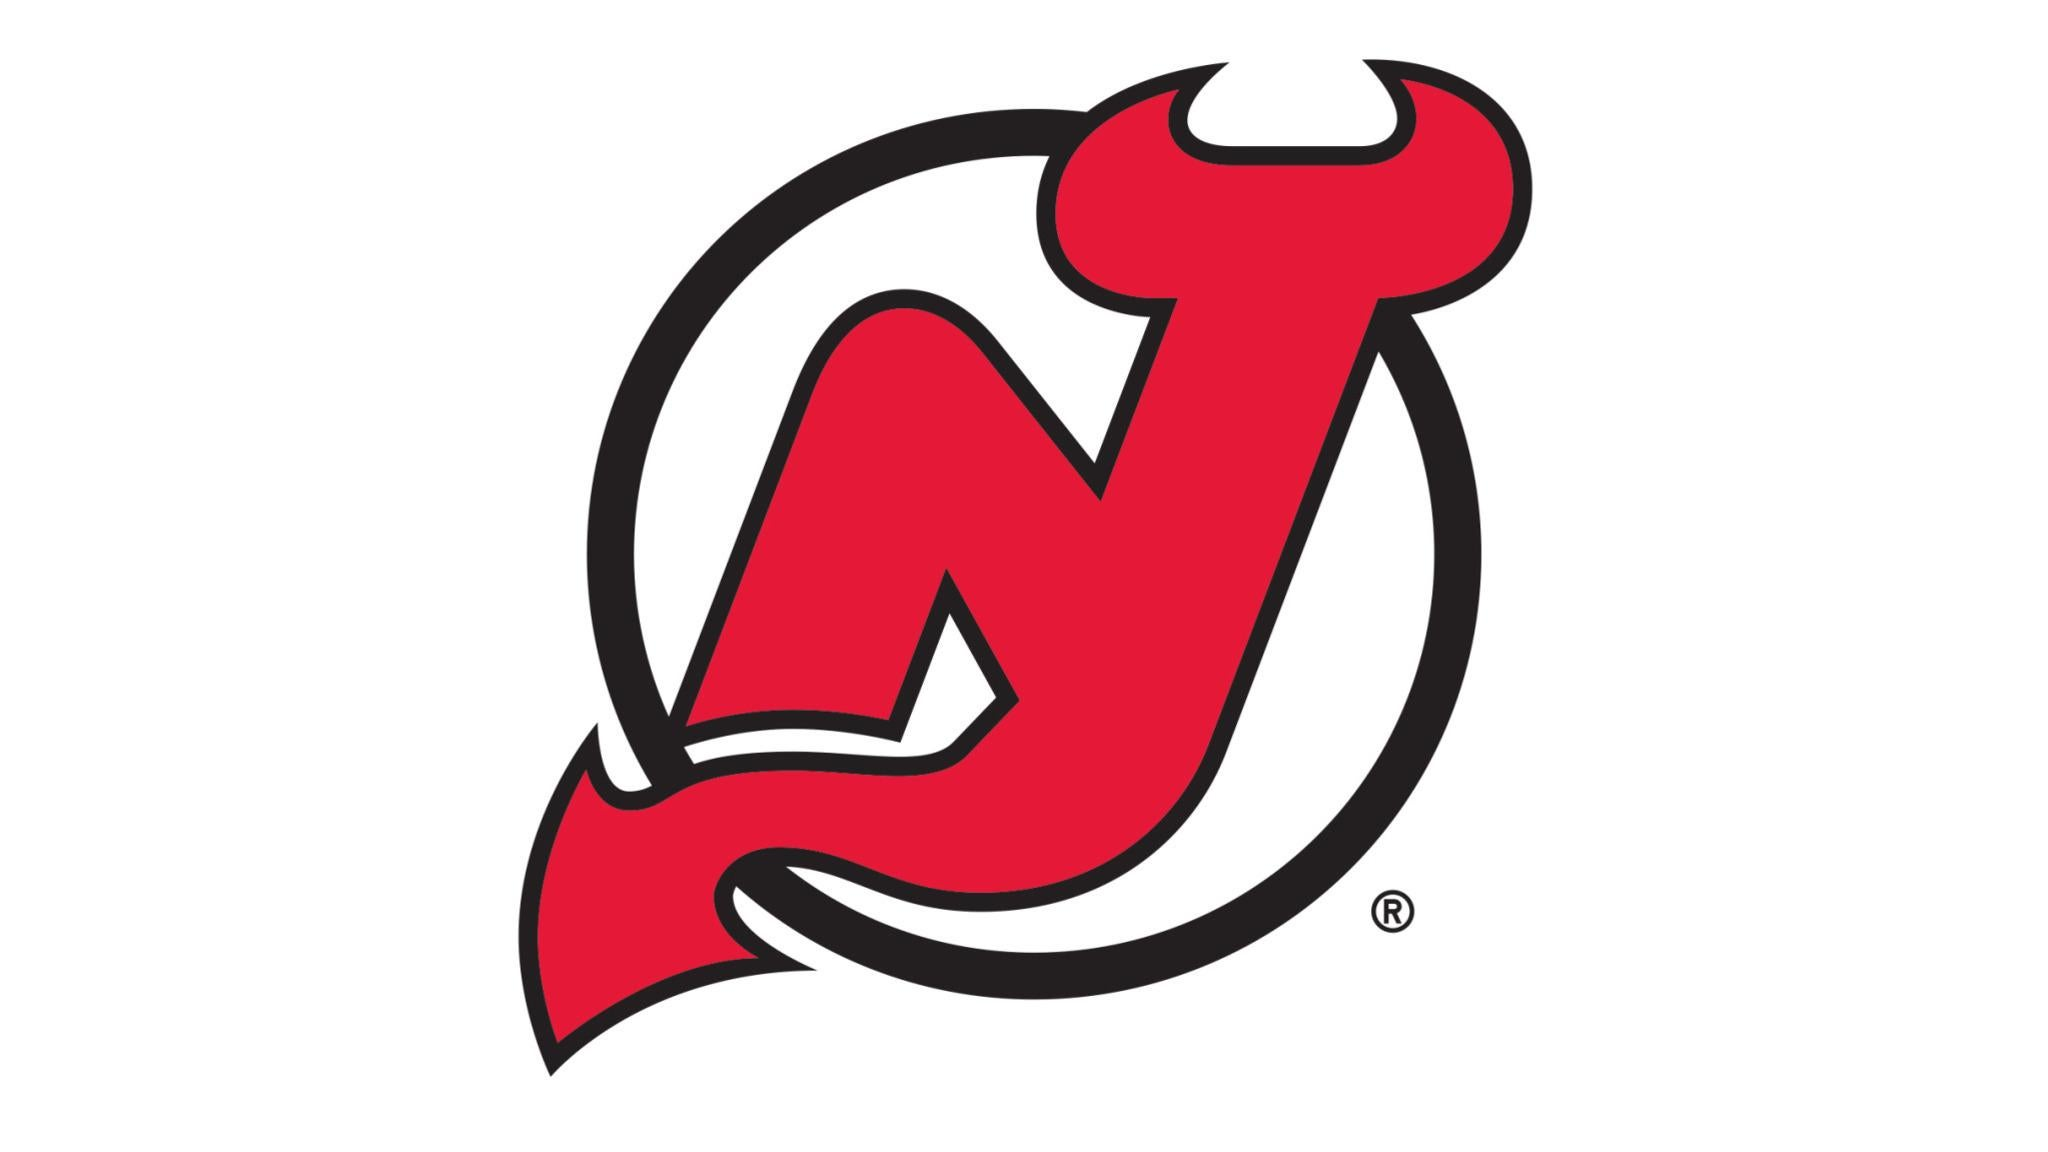 New Jersey Devils vs. St. Louis Blues at Prudential Center